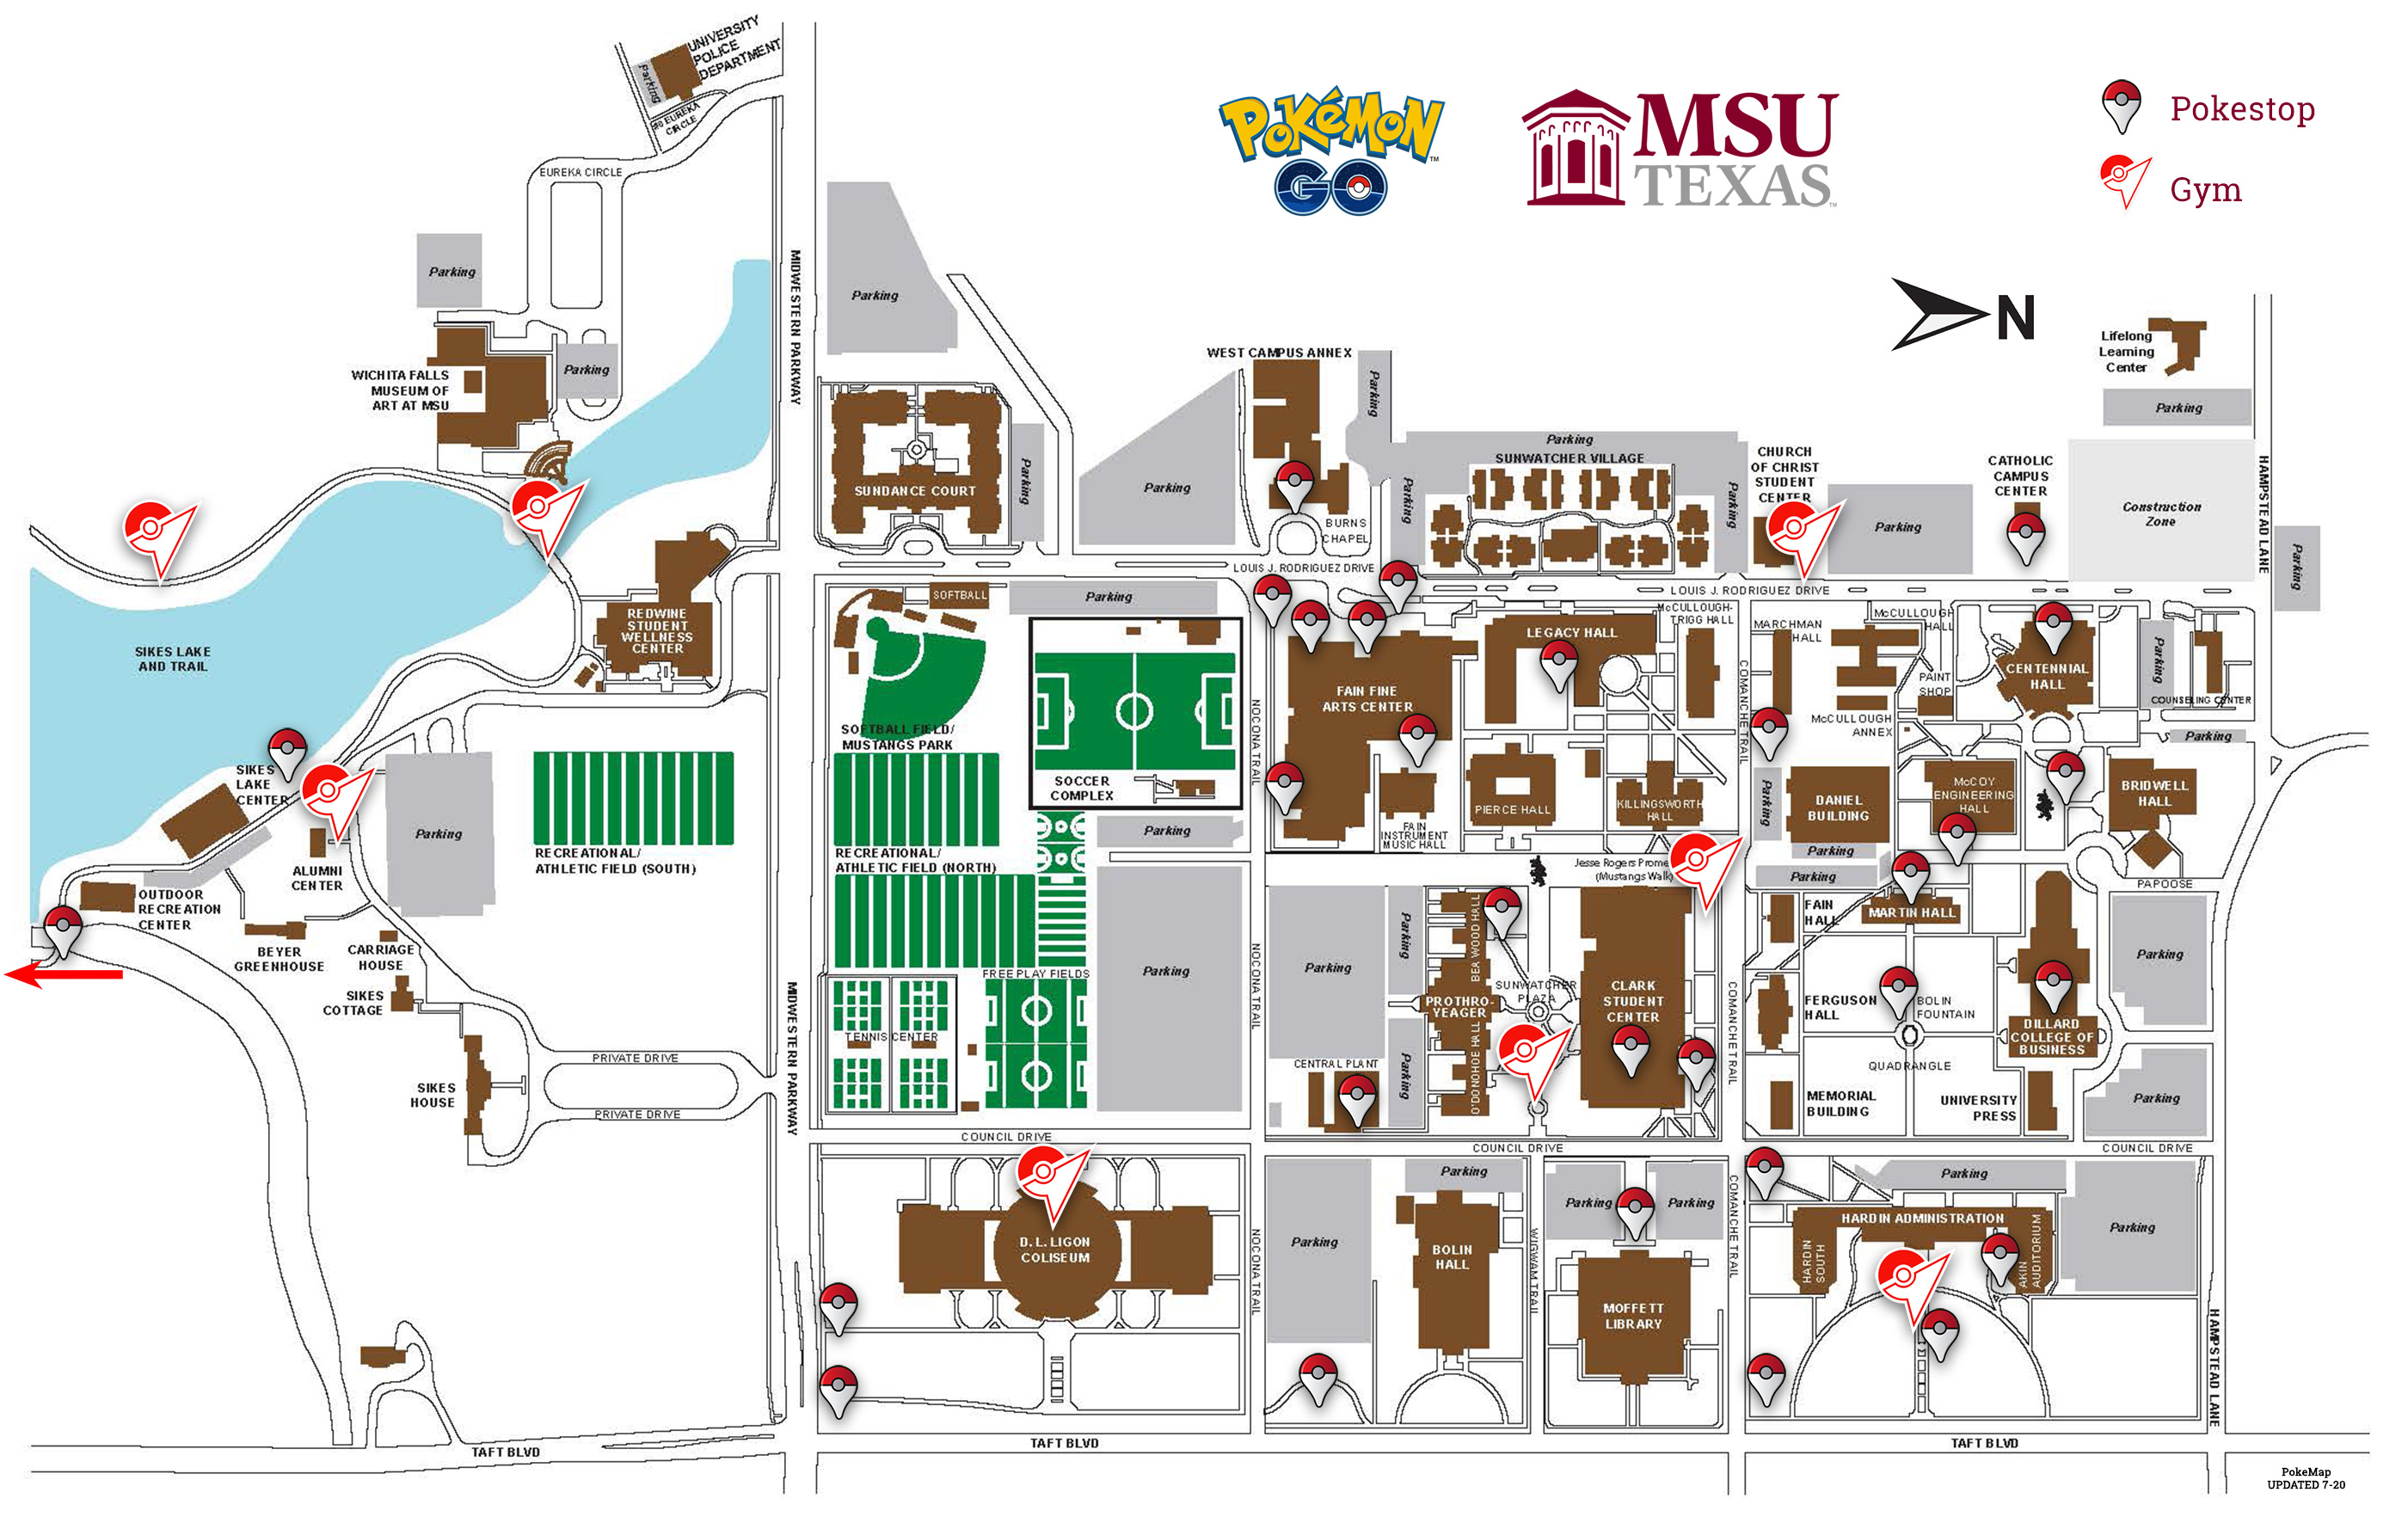 Pokemon Go Social Media Msu Texas